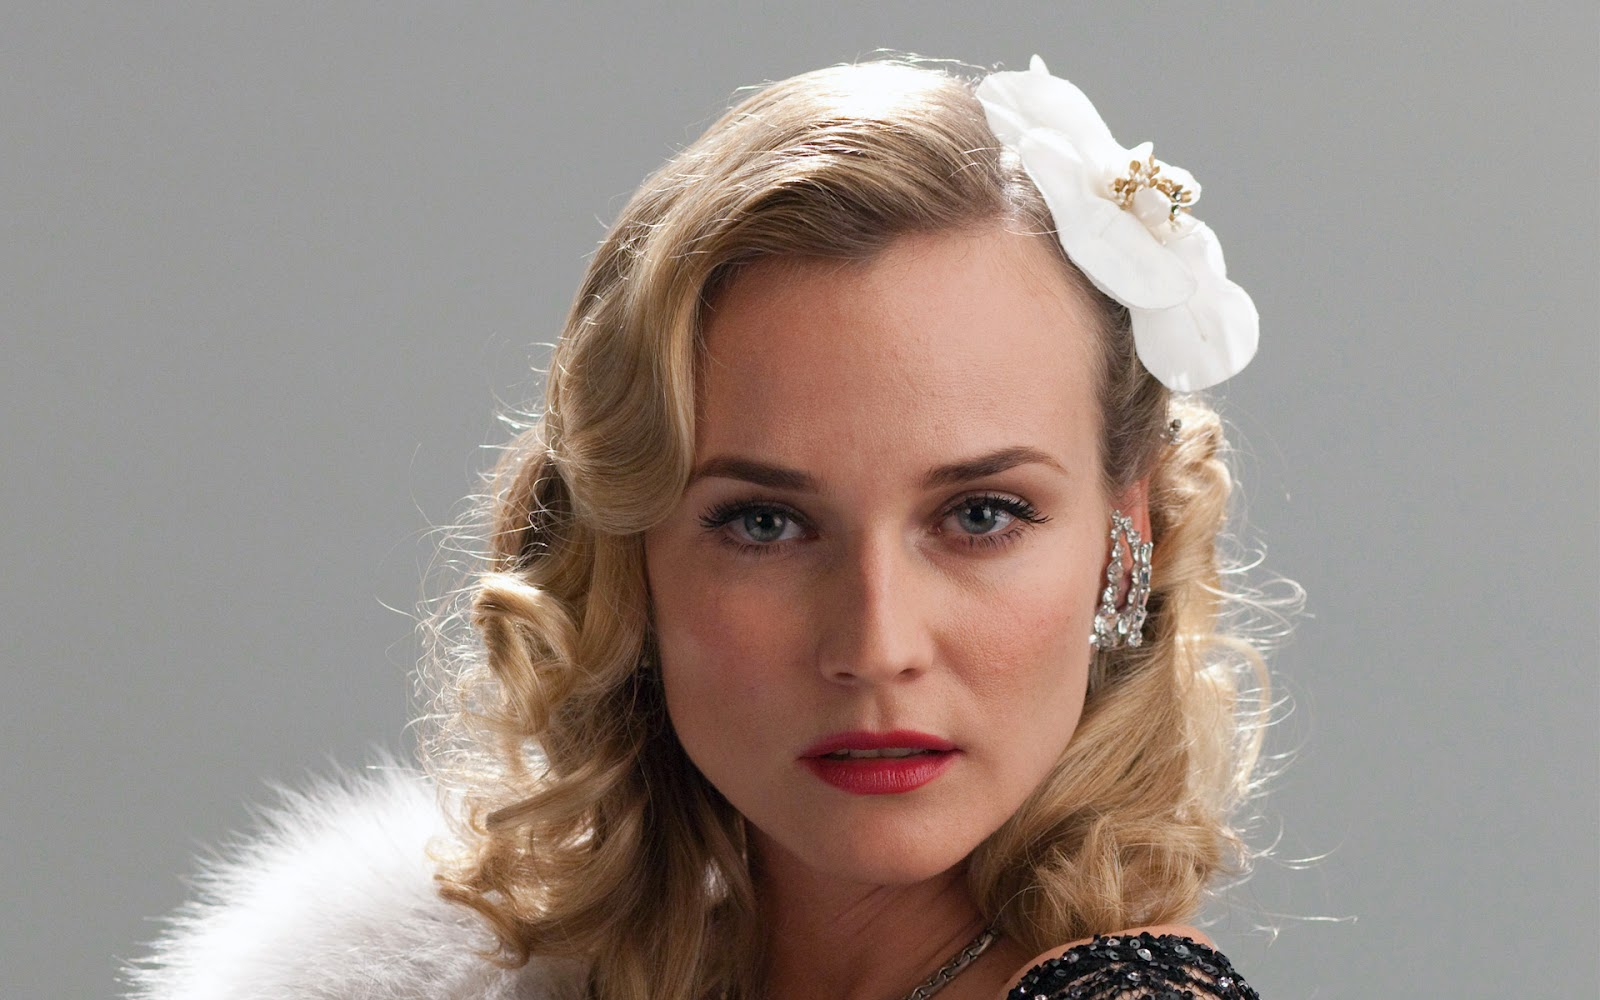 Cool Girl Wallpapers 2017 Diane Kruger Germany Actress 2012 Free Wallpaper Backgrounds